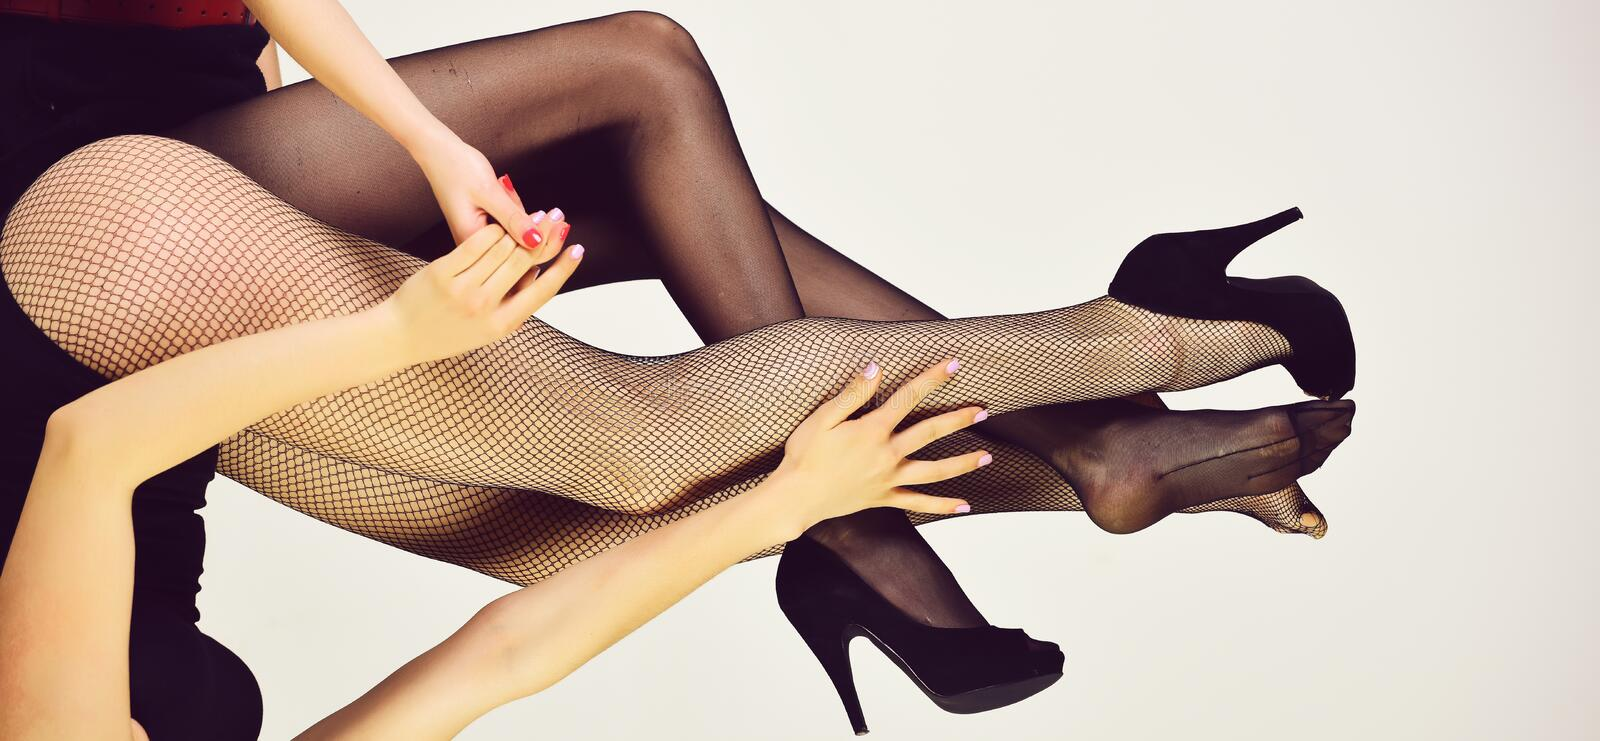 Lesbian couple in love. legs of women in fashionable tights and shoes royalty free stock photo